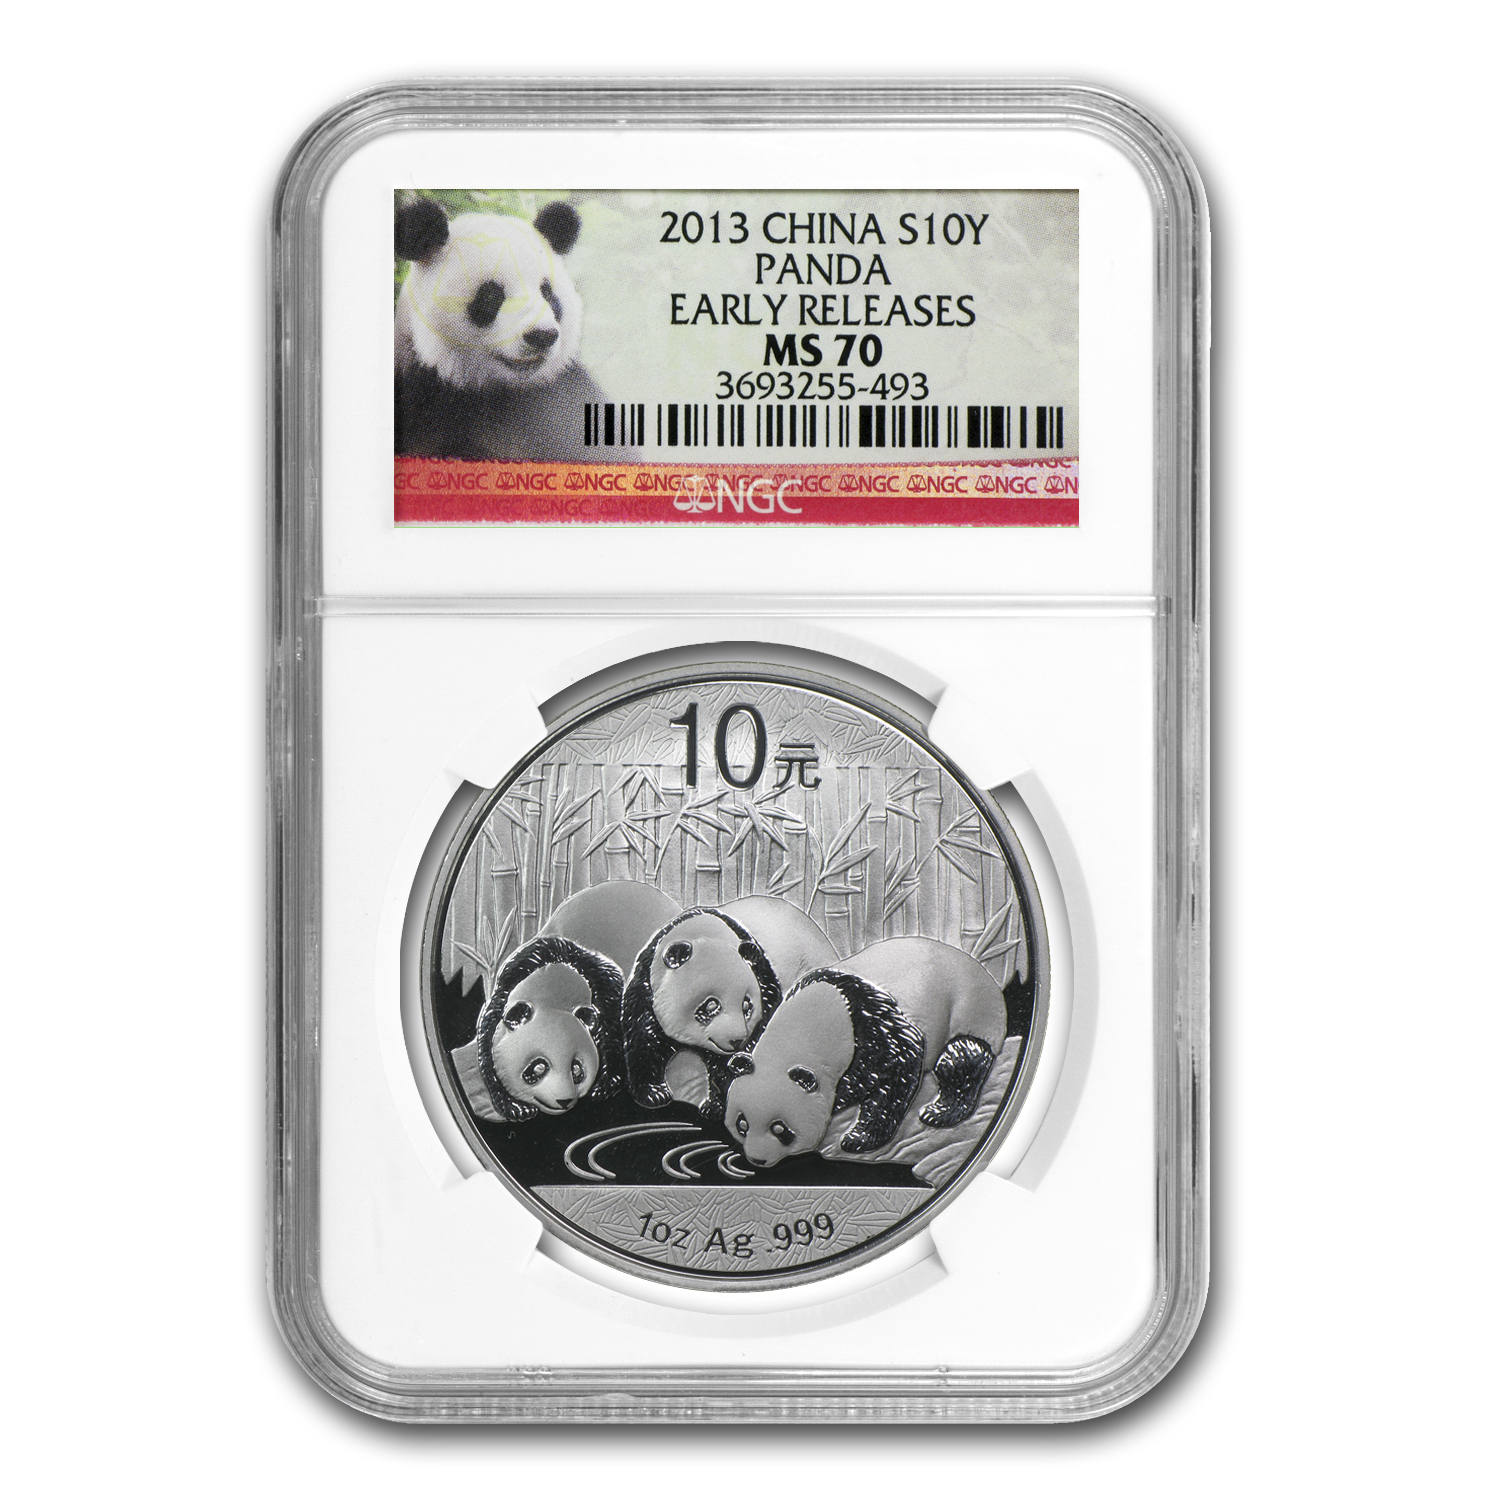 2013 China 1 oz Silver Panda MS-70 NGC (Early Releases)